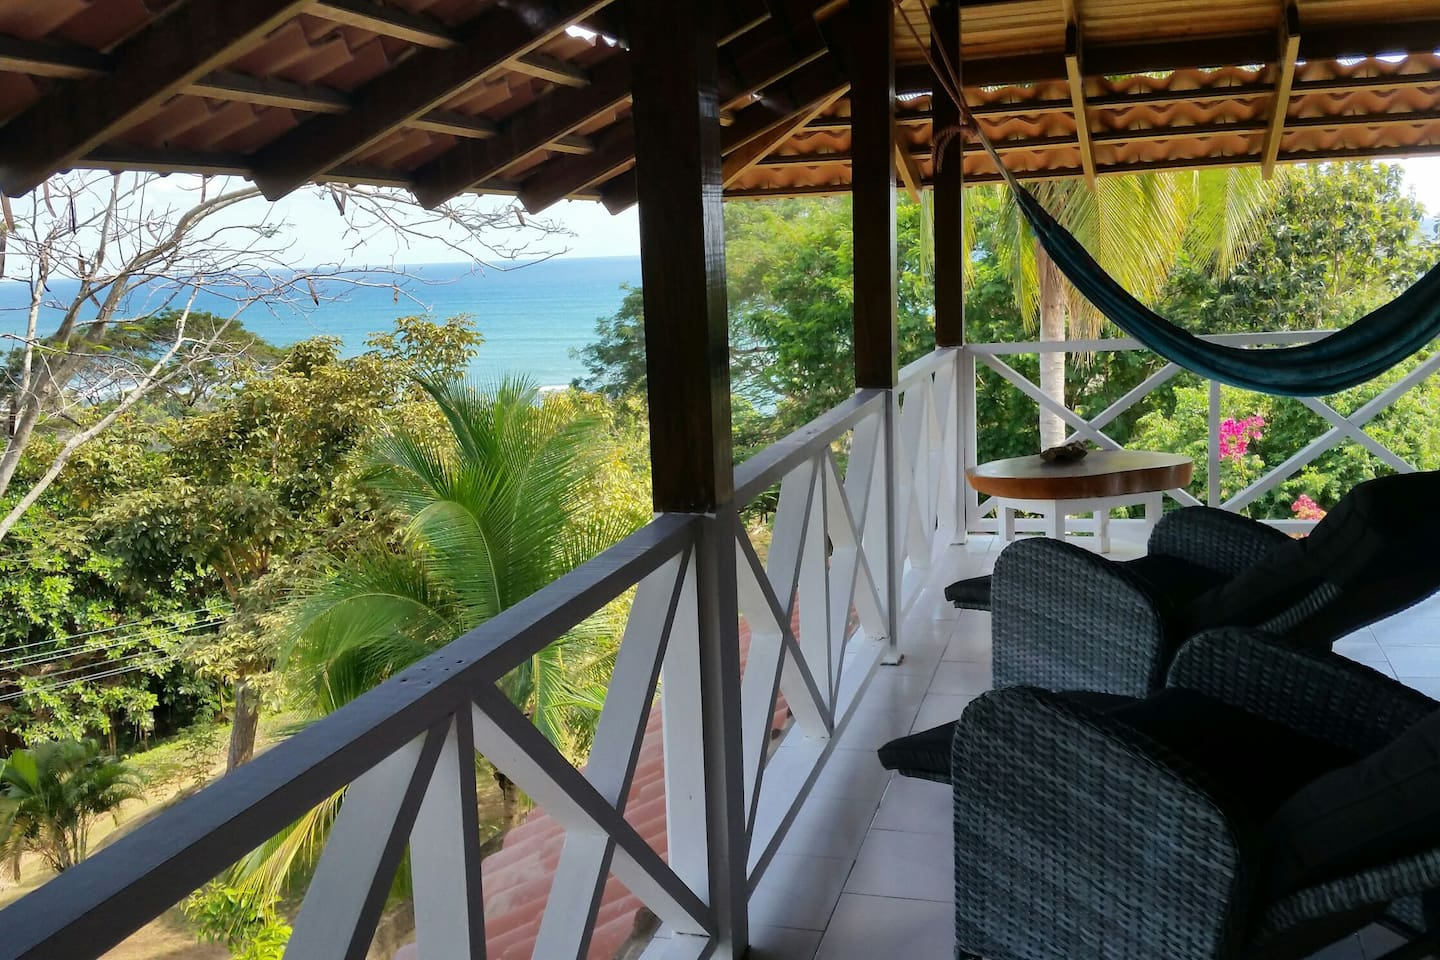 Relax, unwind & enjoy the serenity of tropical paradise while staying @ the treehouse loft